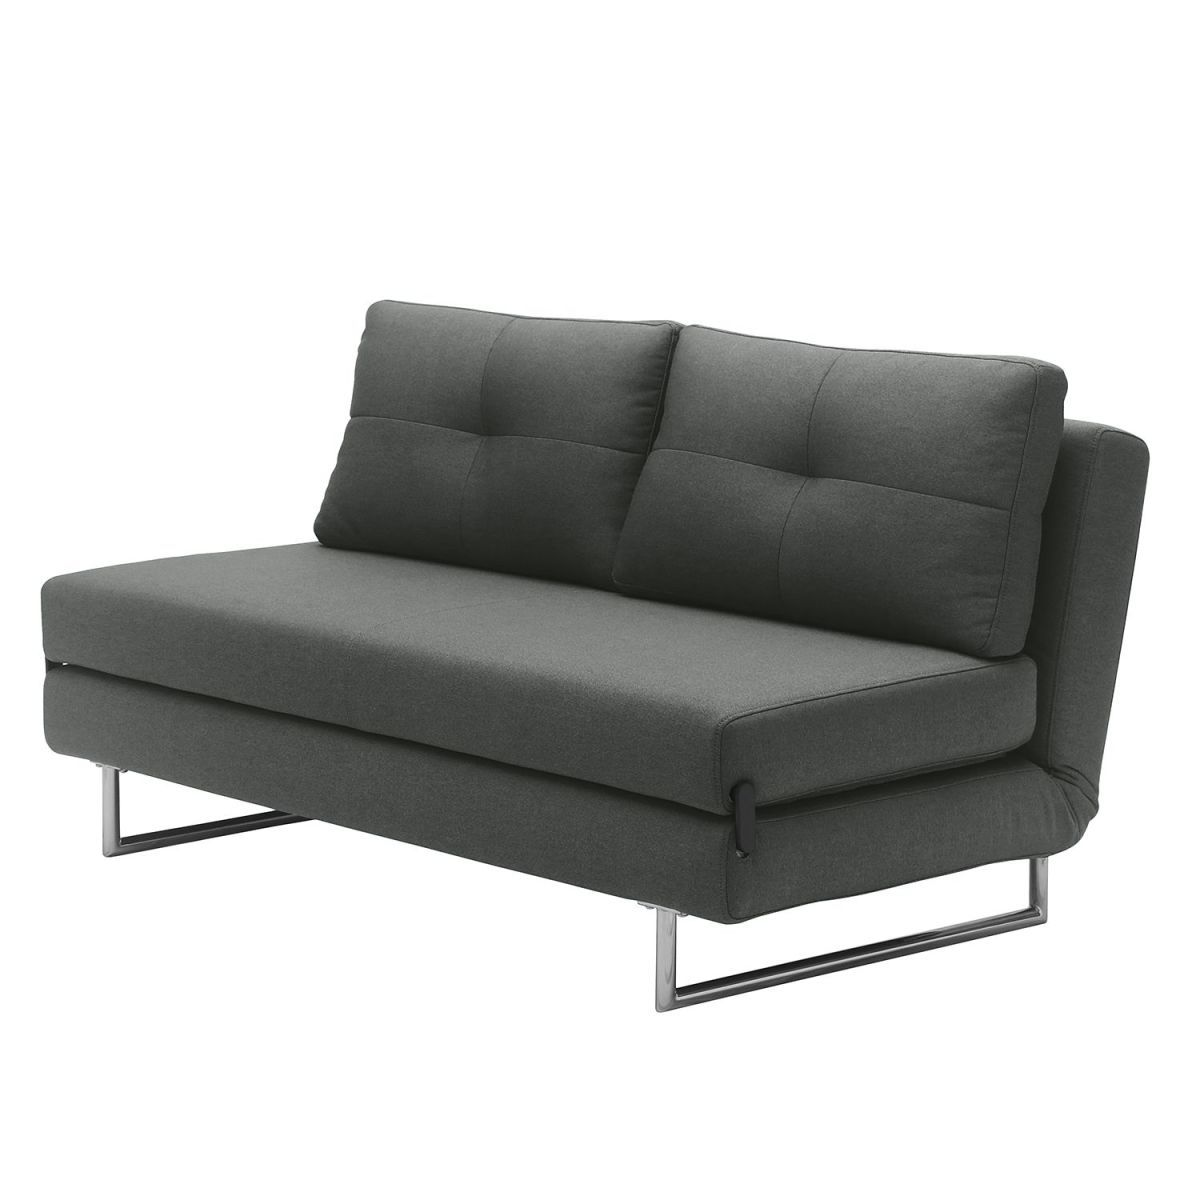 schlafsofa newheaven webstoff dunkelgrau studio copenhagen jetzt bestellen unter https. Black Bedroom Furniture Sets. Home Design Ideas